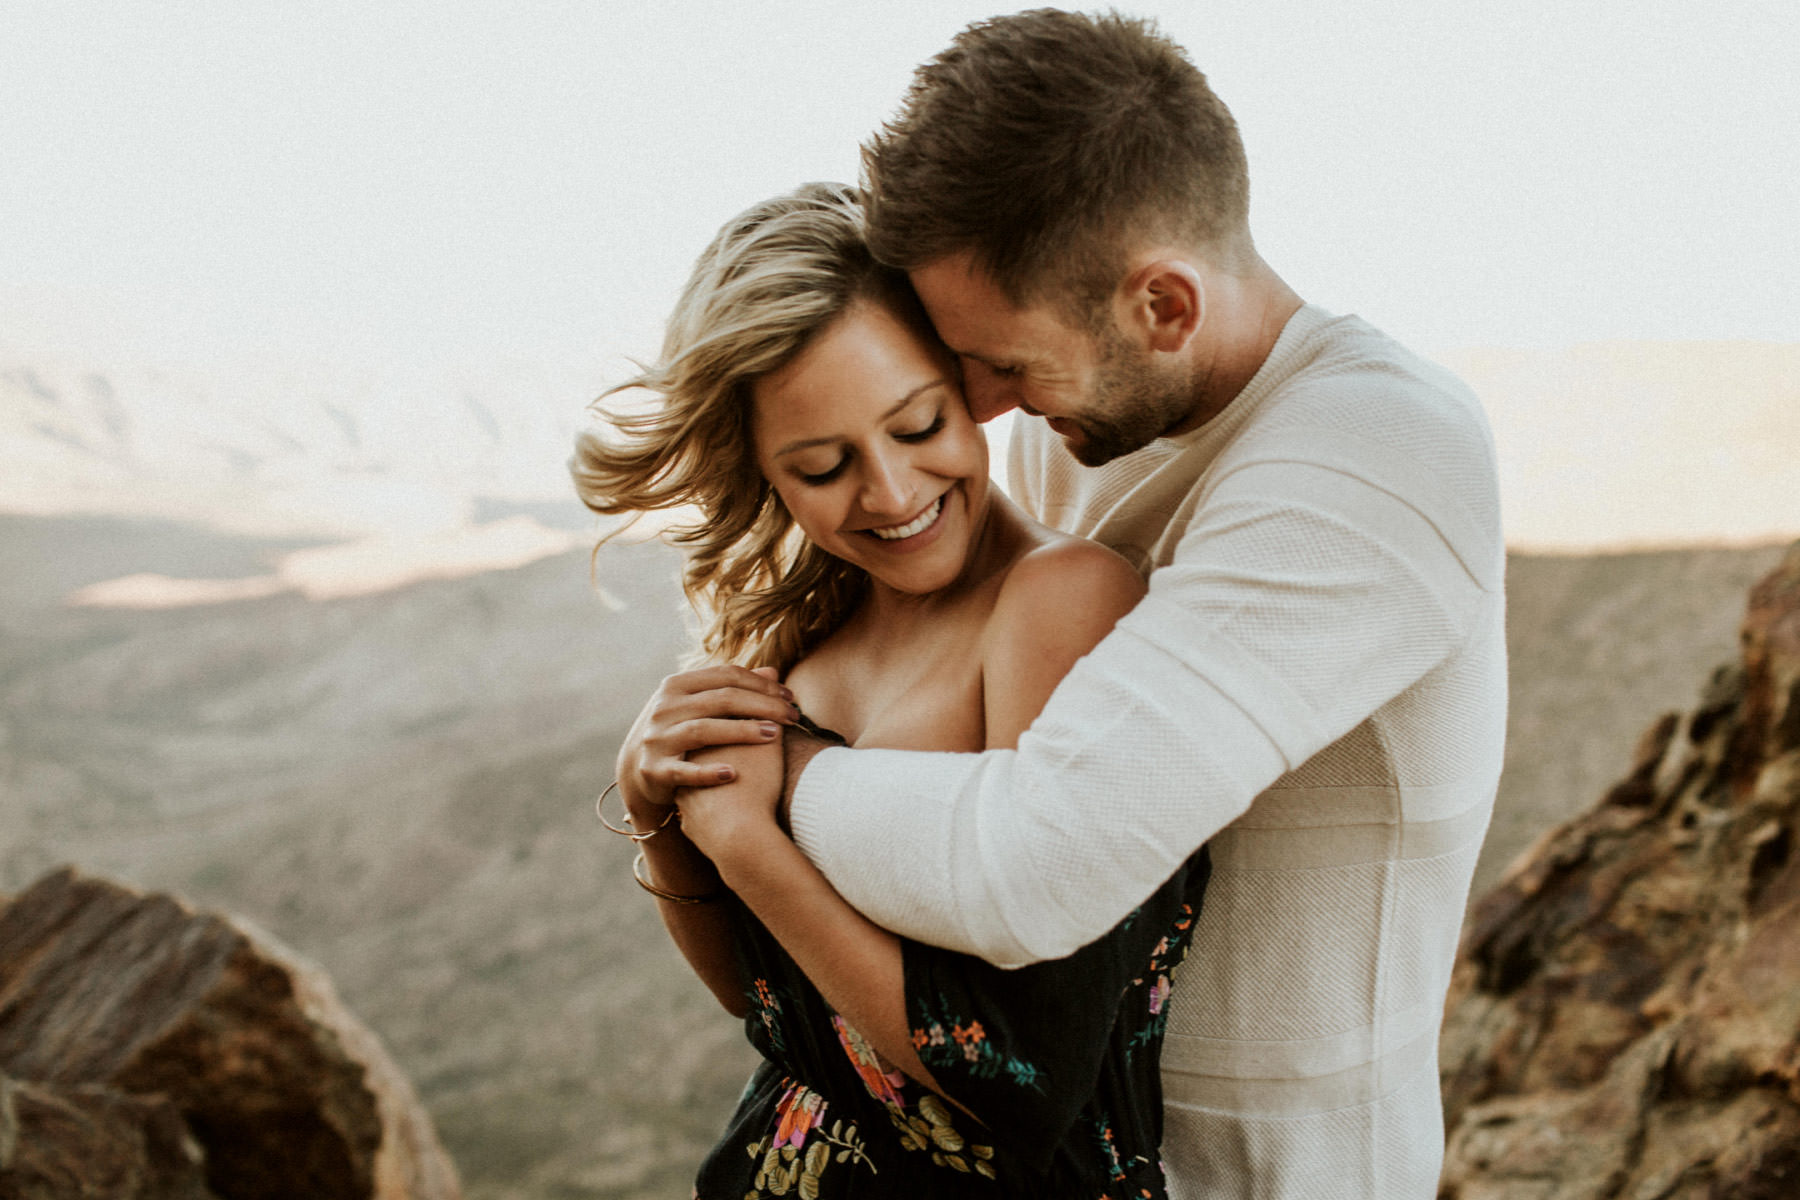 Desert mountaintop love session